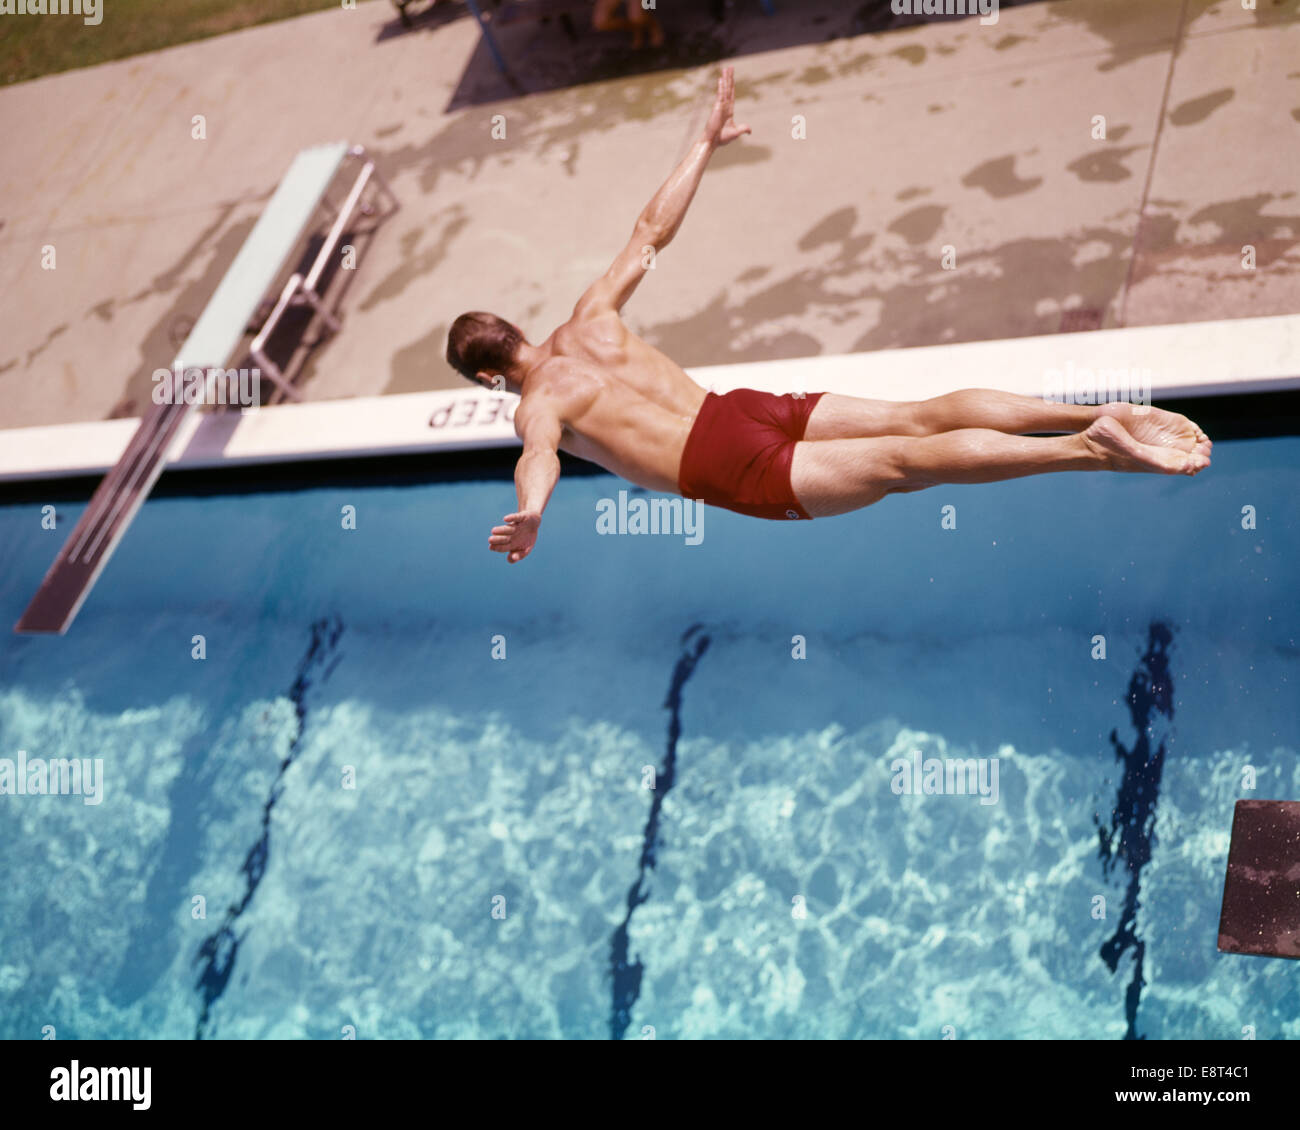 1960s MAN IN RED SWIM TRUNKS DIVING INTO SWIMMING POOL